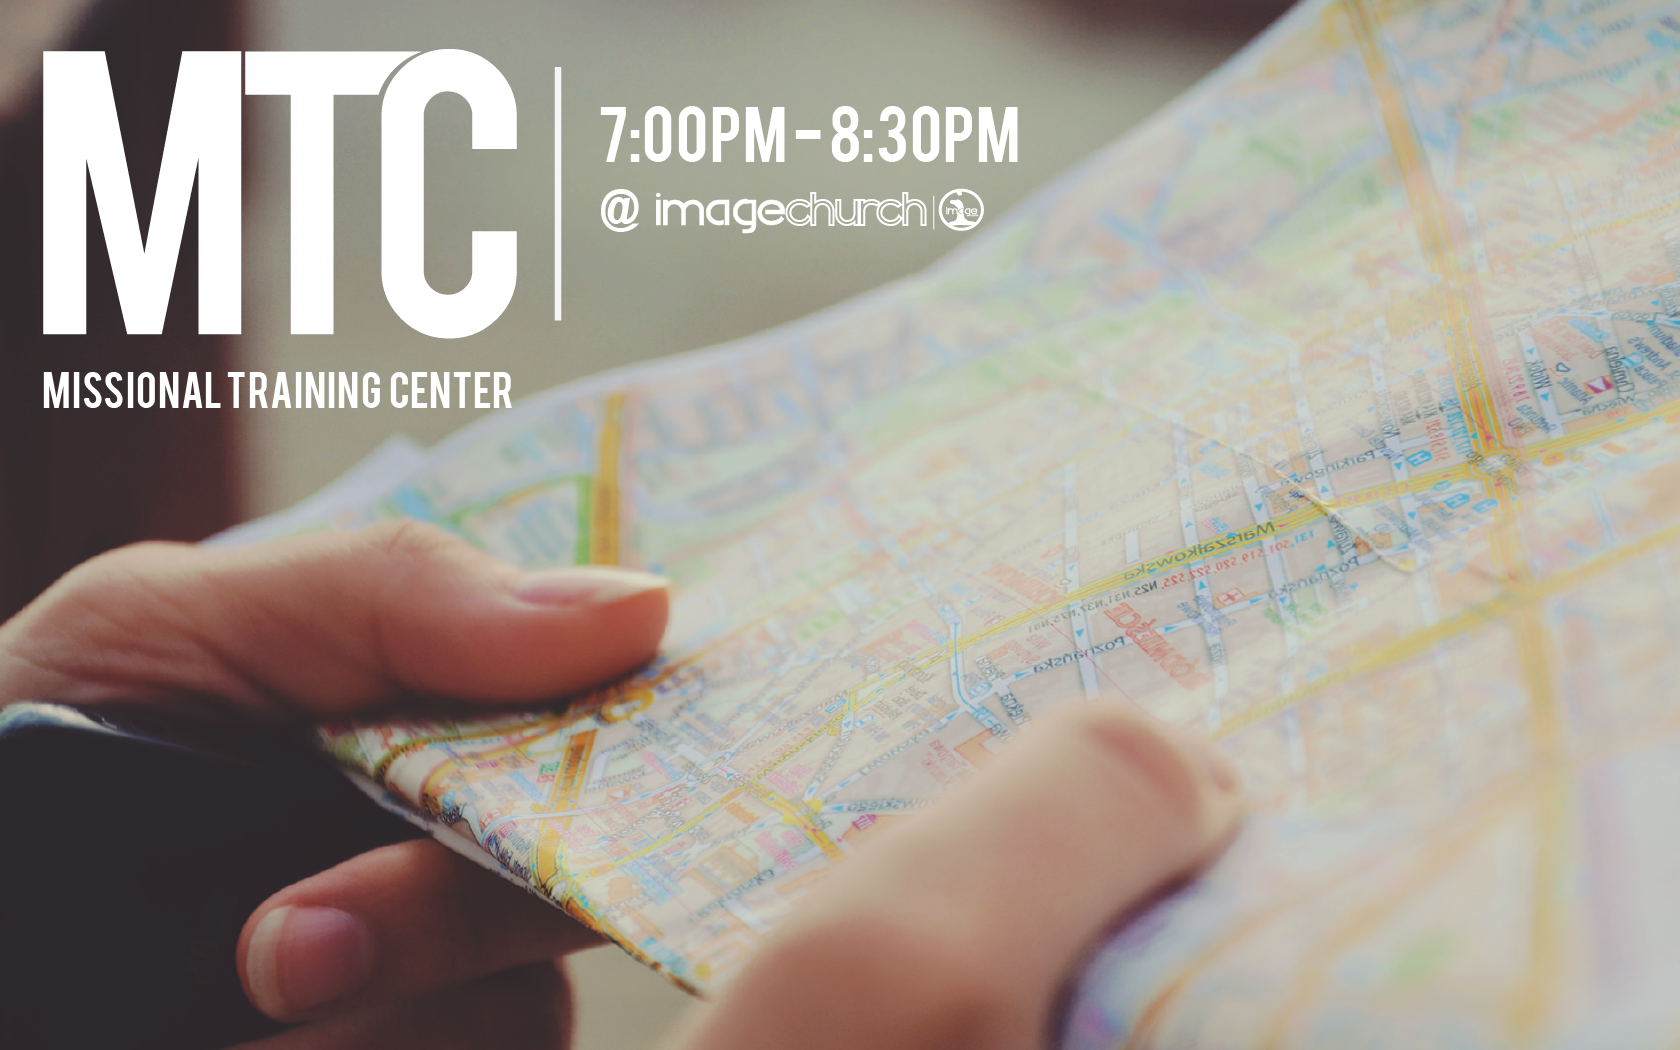 MTC / Missional Training Center  Wednesday, April 5, 2017  7:00pm - 8:30pm  Image Church  13900 Church Hill Drive  Woodbridge, Va. 22191  Join us for our monthly training center, intentionally designed to help train and equip you to make disciples who make disciples. All our welcome! Dinner and childcare are provided.